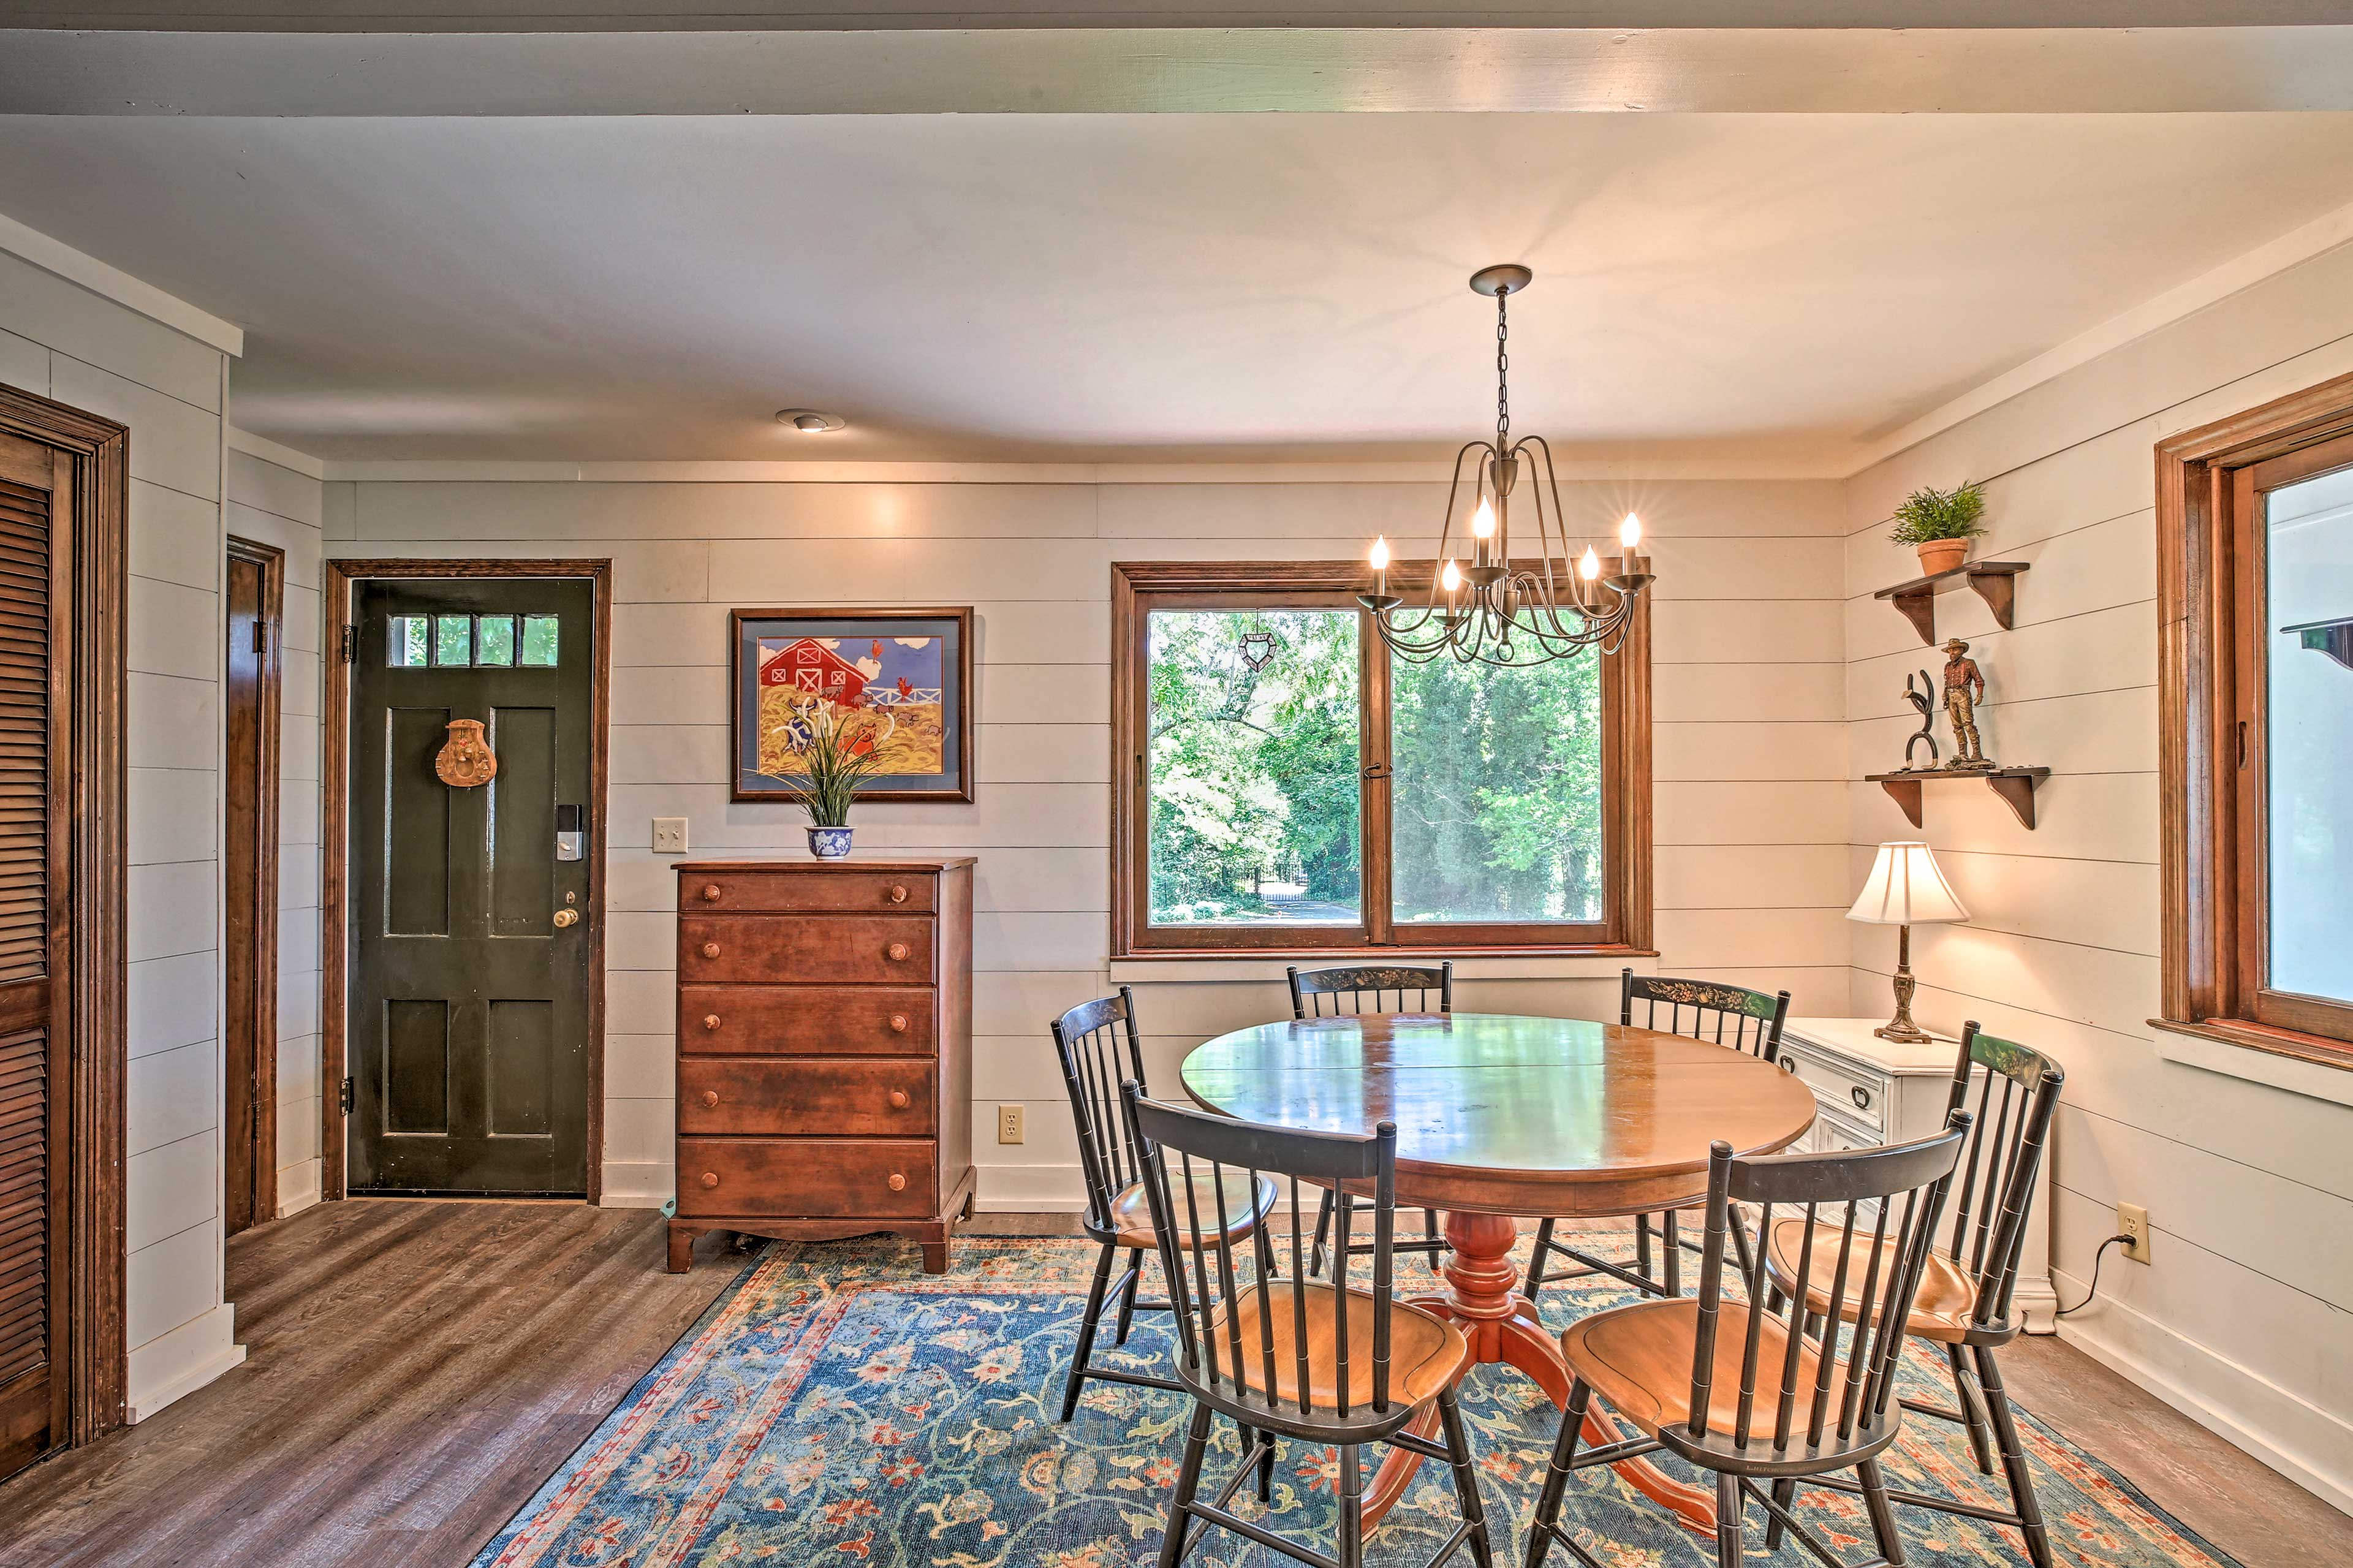 Escape to this charming and beautifully decorated vacation rental home!